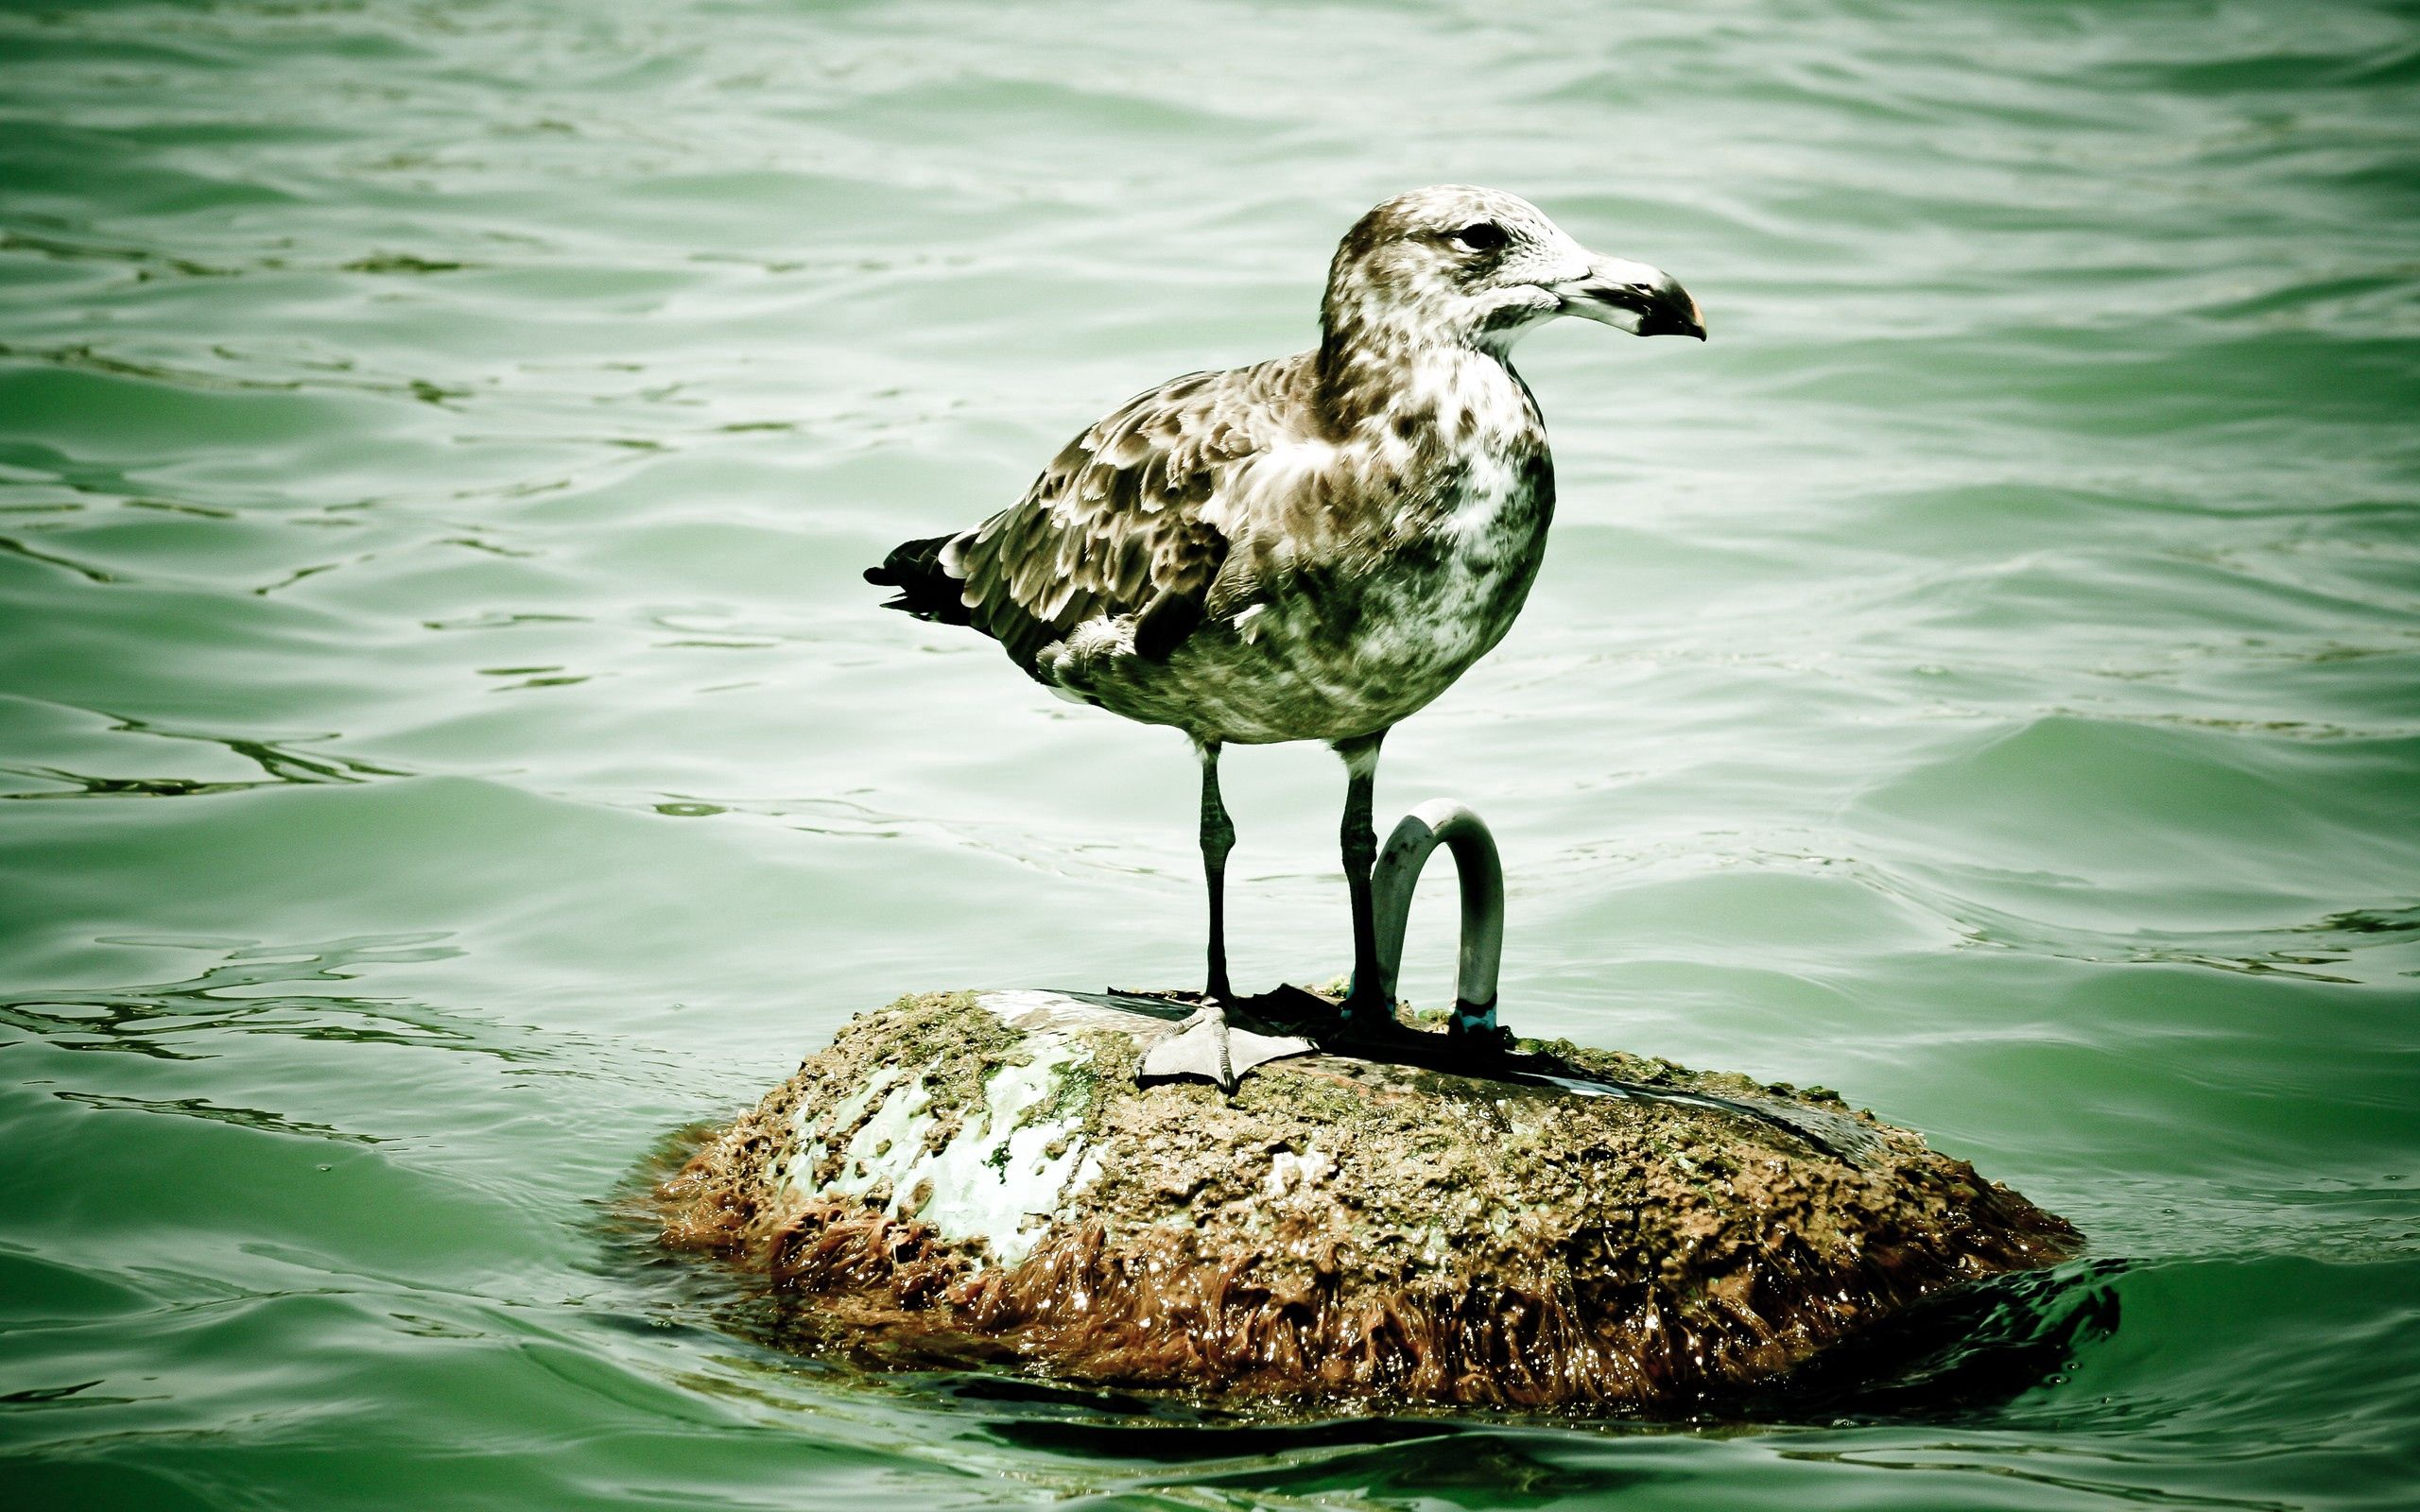 107666 download wallpaper Animals, Gull, Seagull, Island, Islet, Sit, Bird screensavers and pictures for free